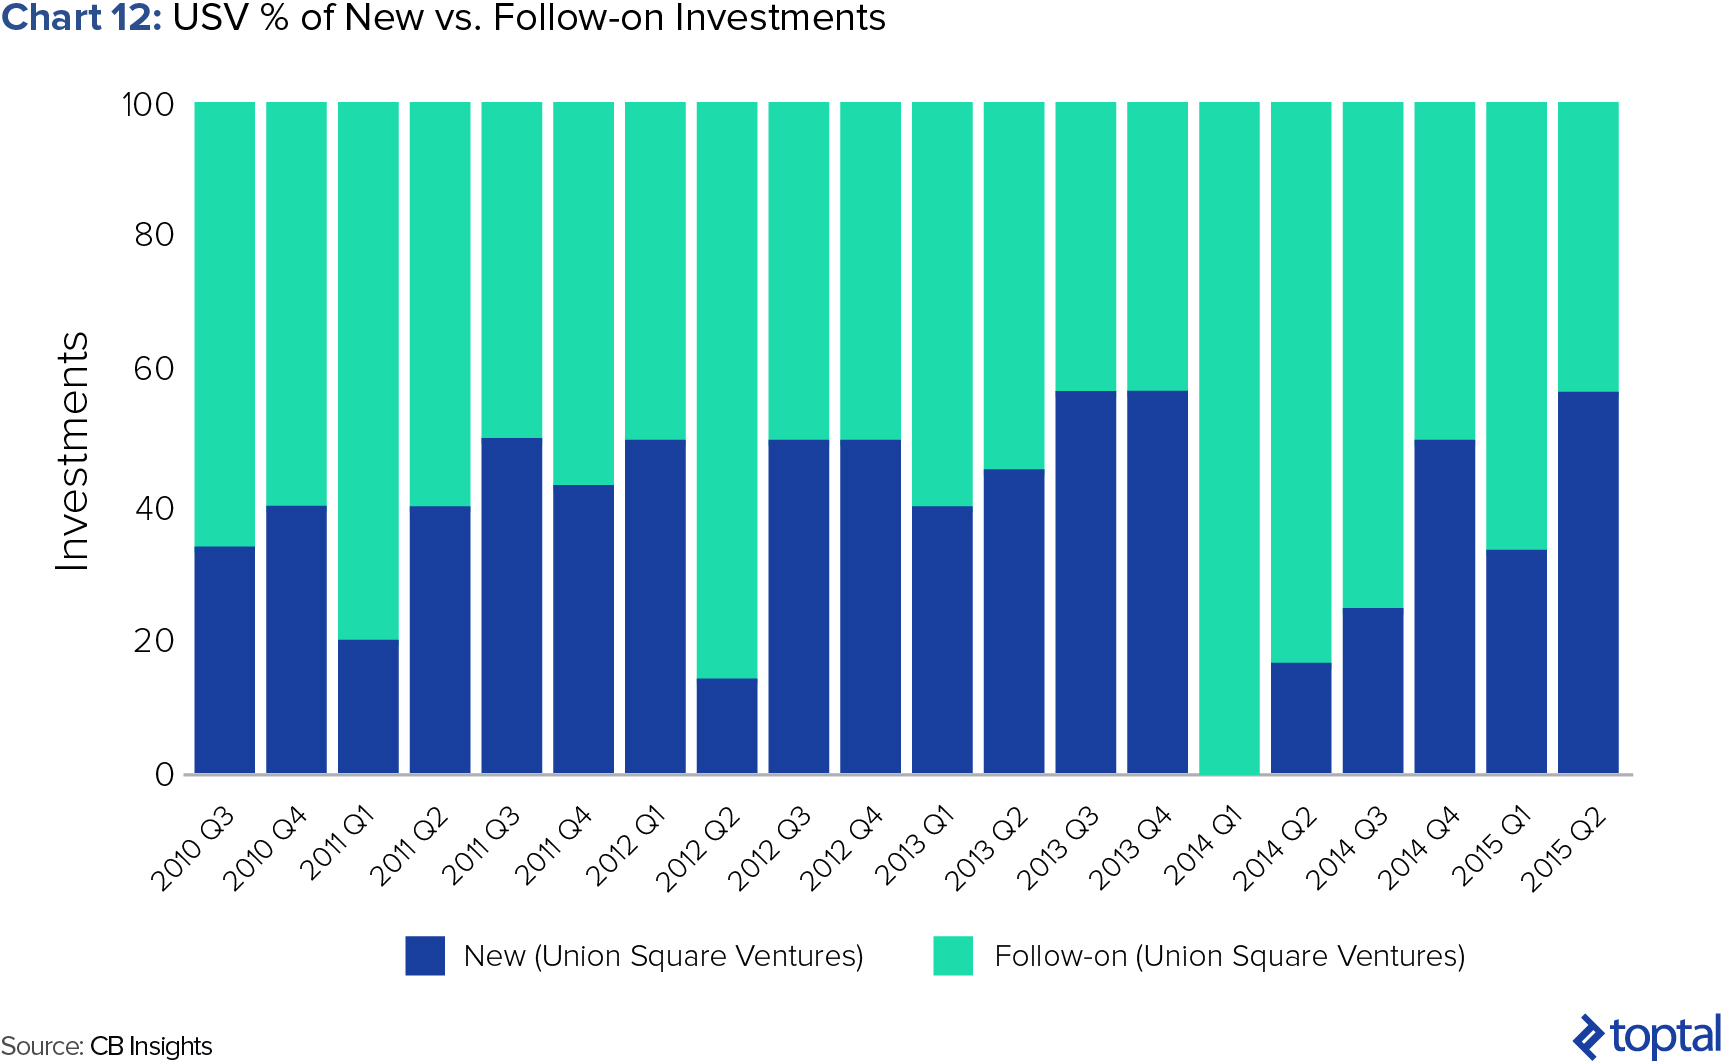 Chart 12: USV % of New vs. Follow-on Investments